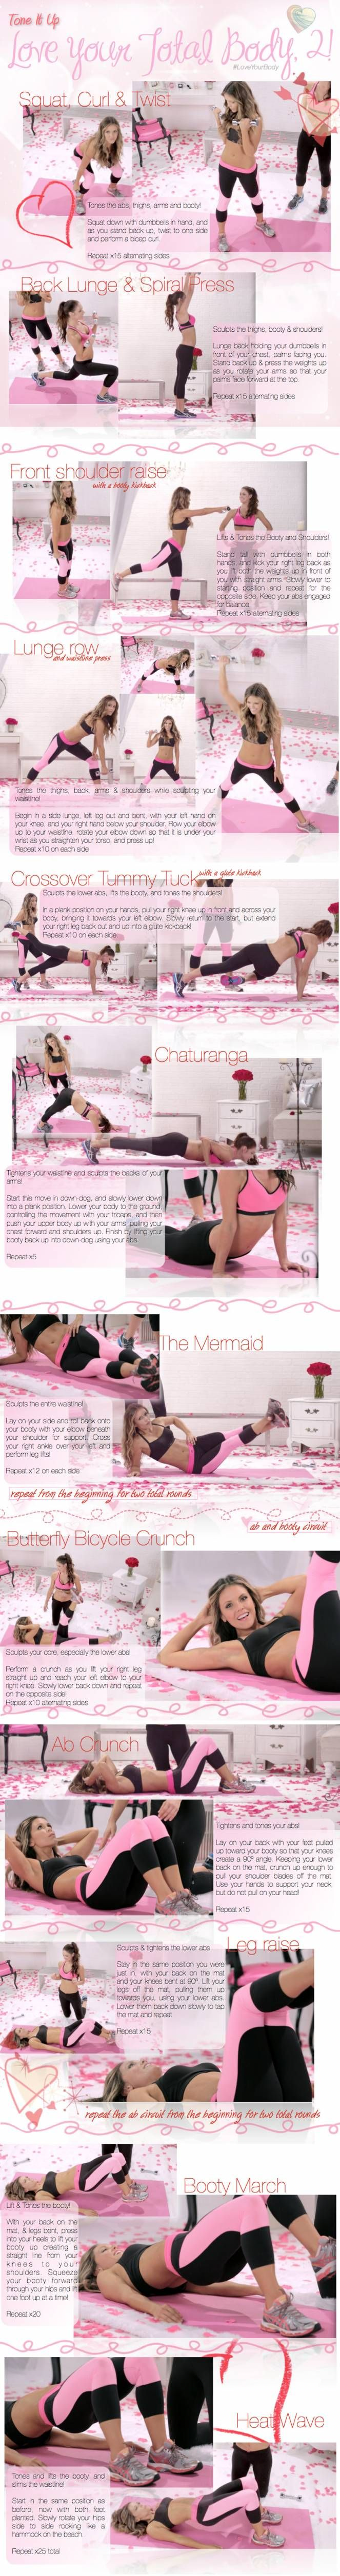 love-your-total-body-2-Tone-it-up-